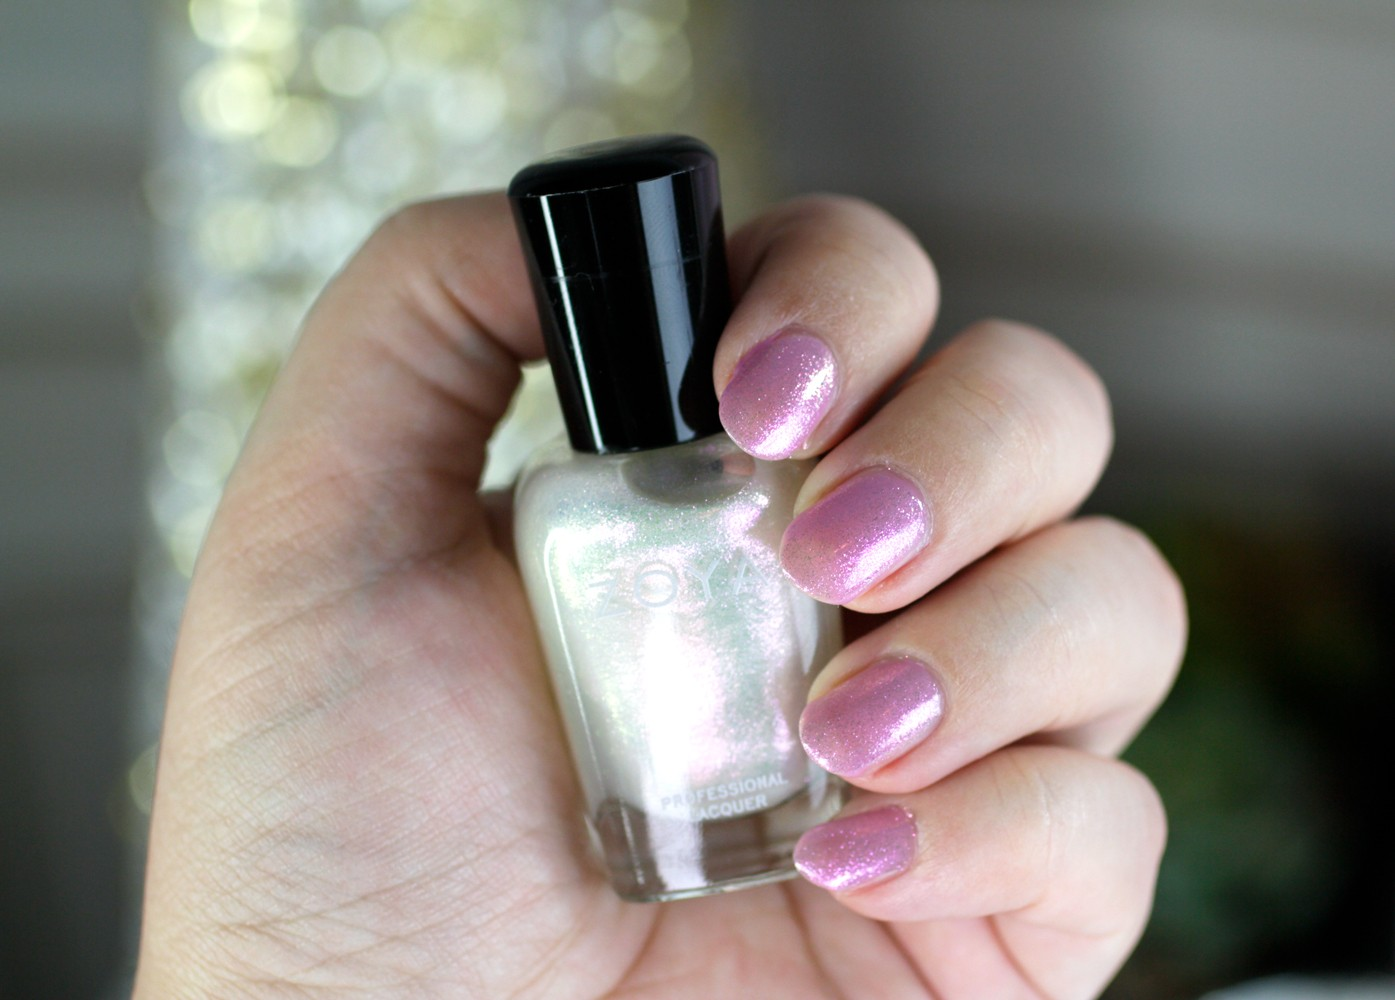 Zoya Pastel Lavender Jelly Polish - Libby Topped with Leia - Zoya Nail Polish Review: Kisses Pastel Jellies Collection by LA cruelty free beauty blogger My Beauty Bunny